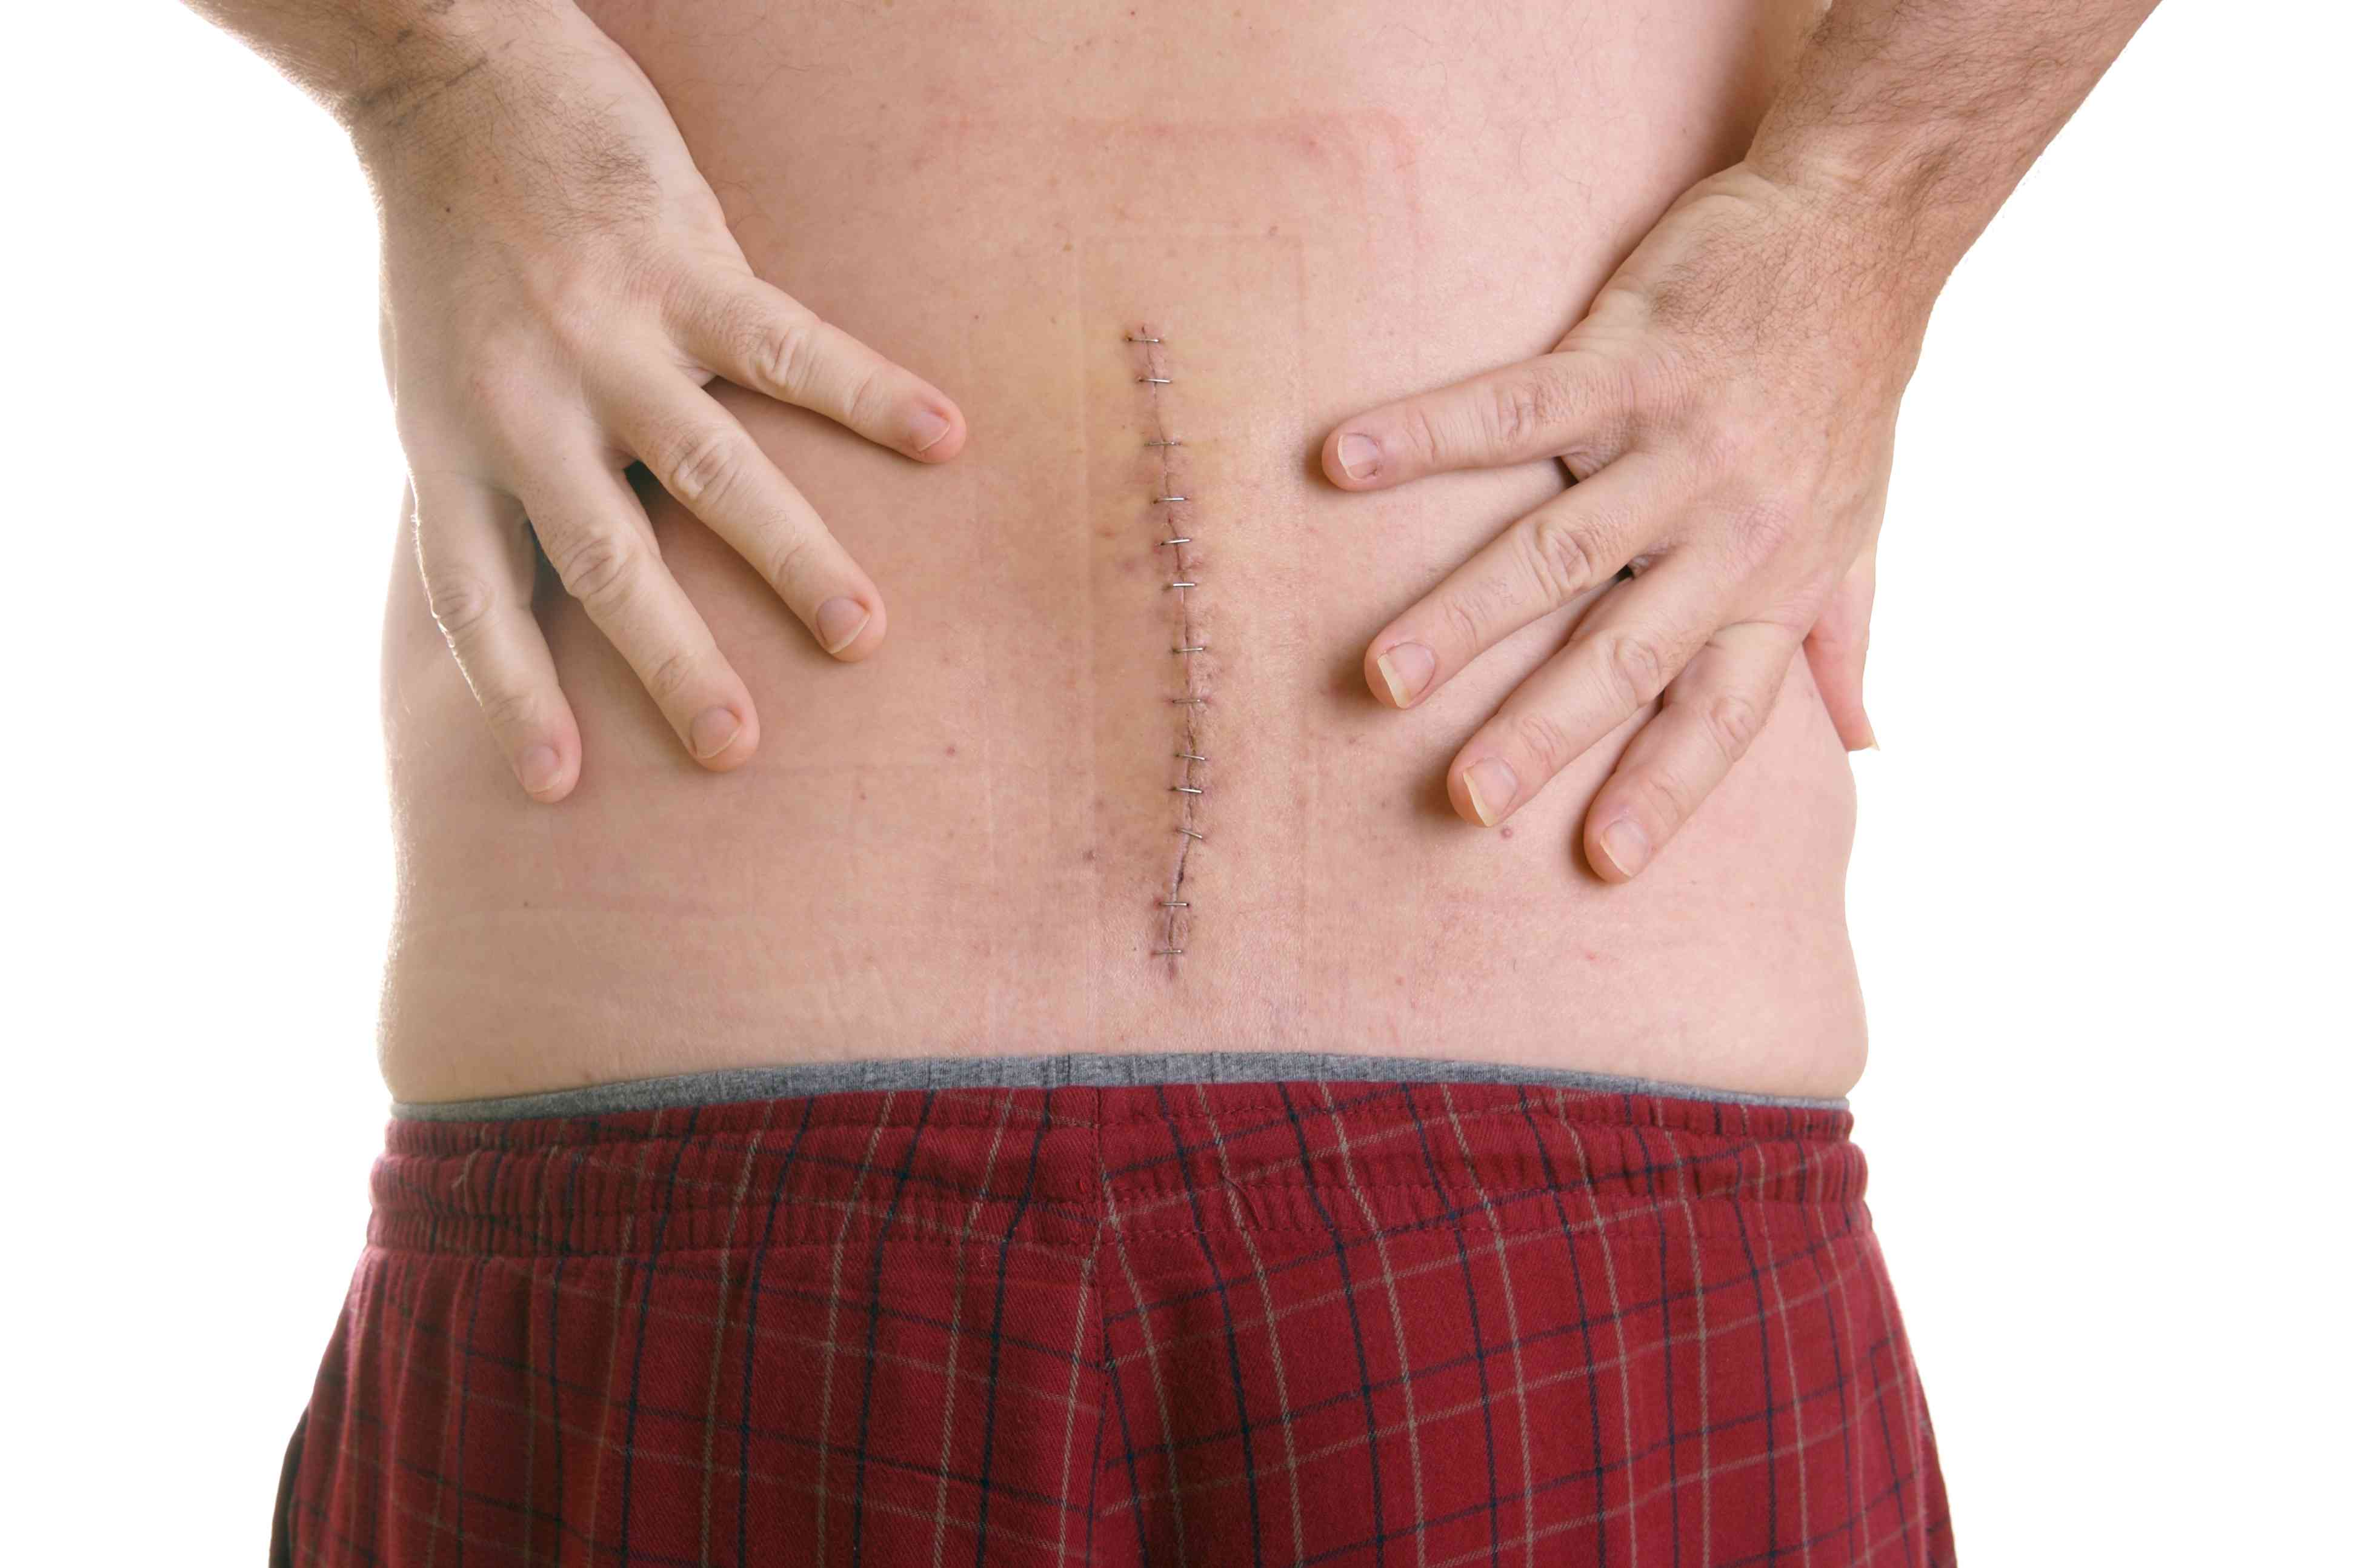 Man in red shorts holding his back on either side of a surgery scar